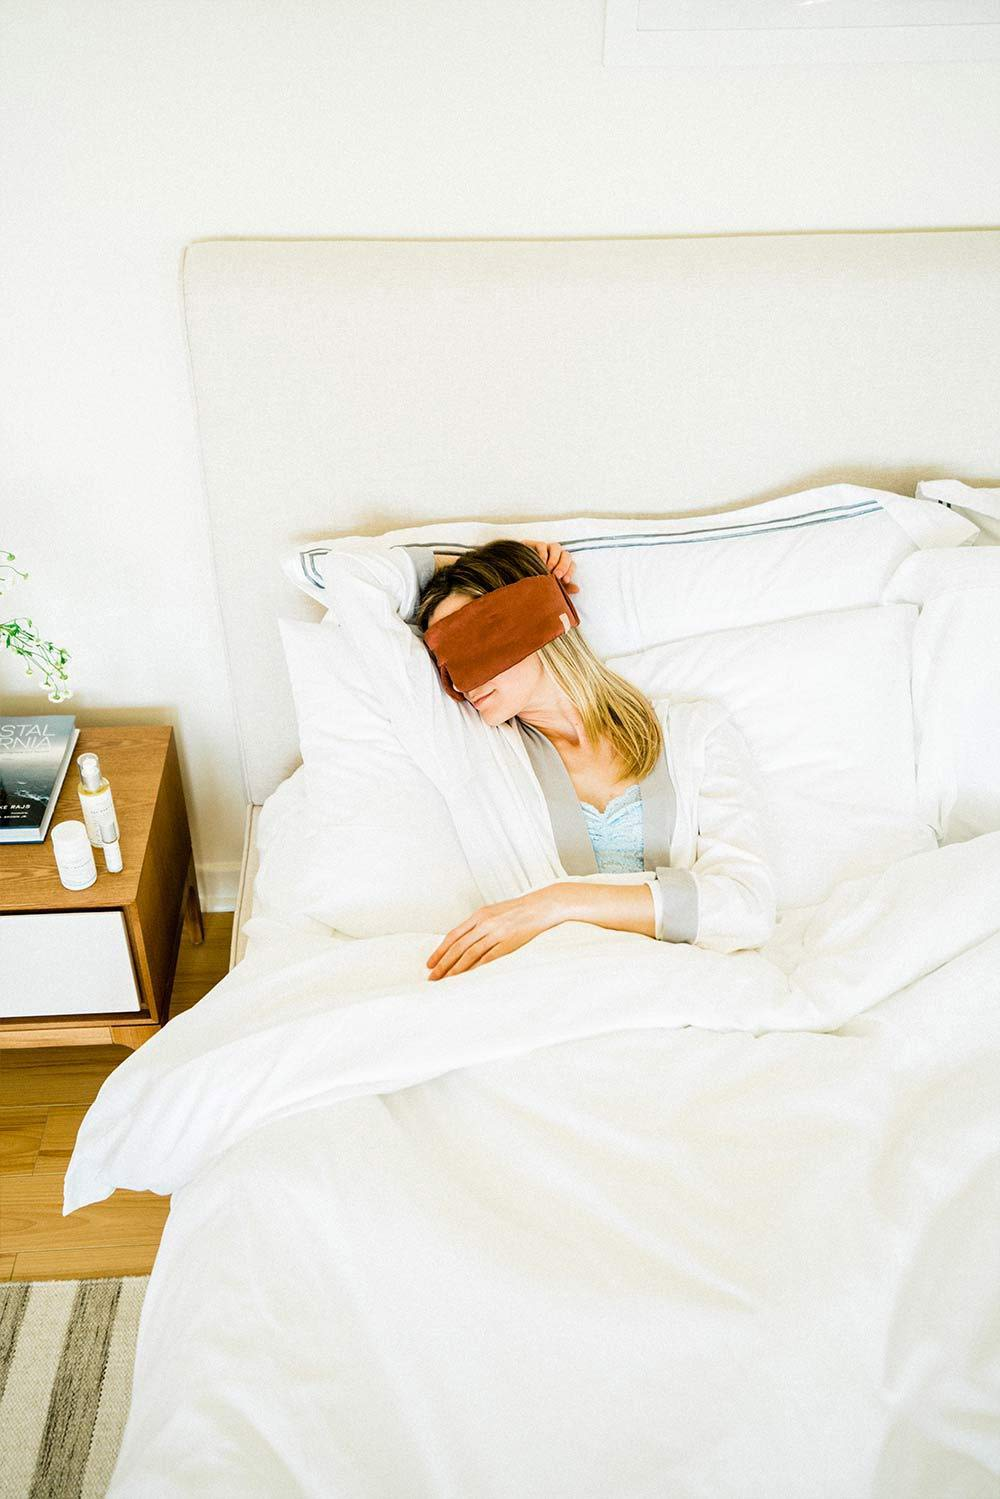 Woman lying in bed with white sheets and eye mask on and a bedside table with Sagely Naturals products.